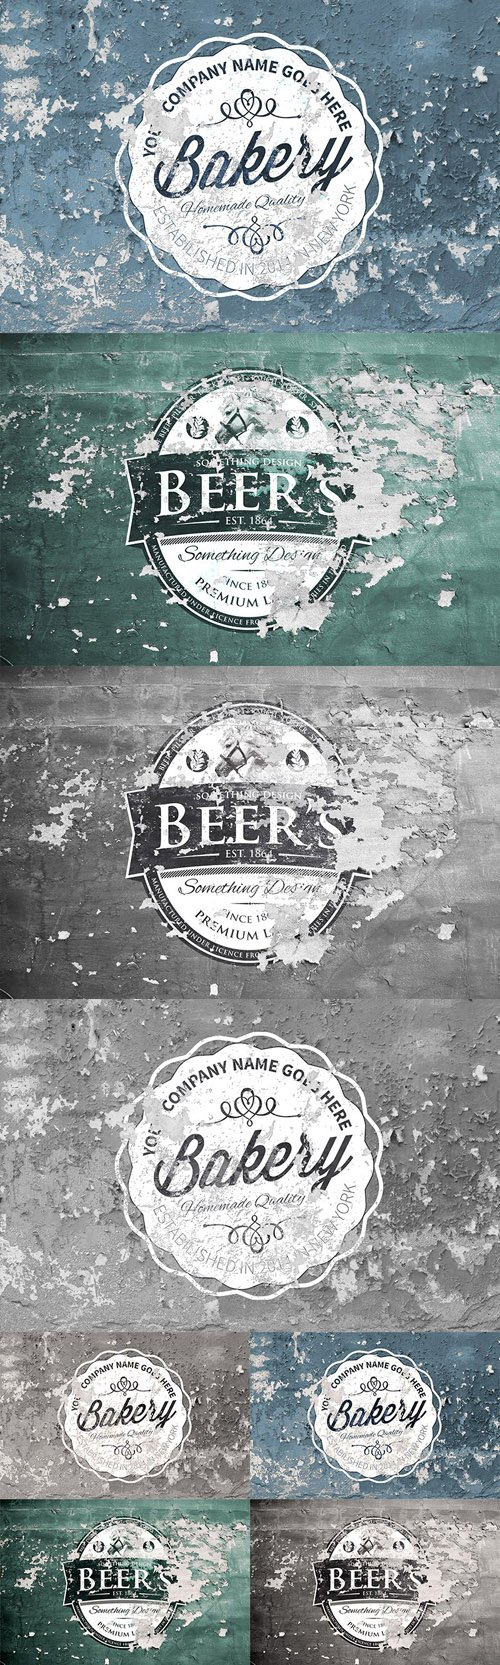 Vintage Overlay Textures PSD Template